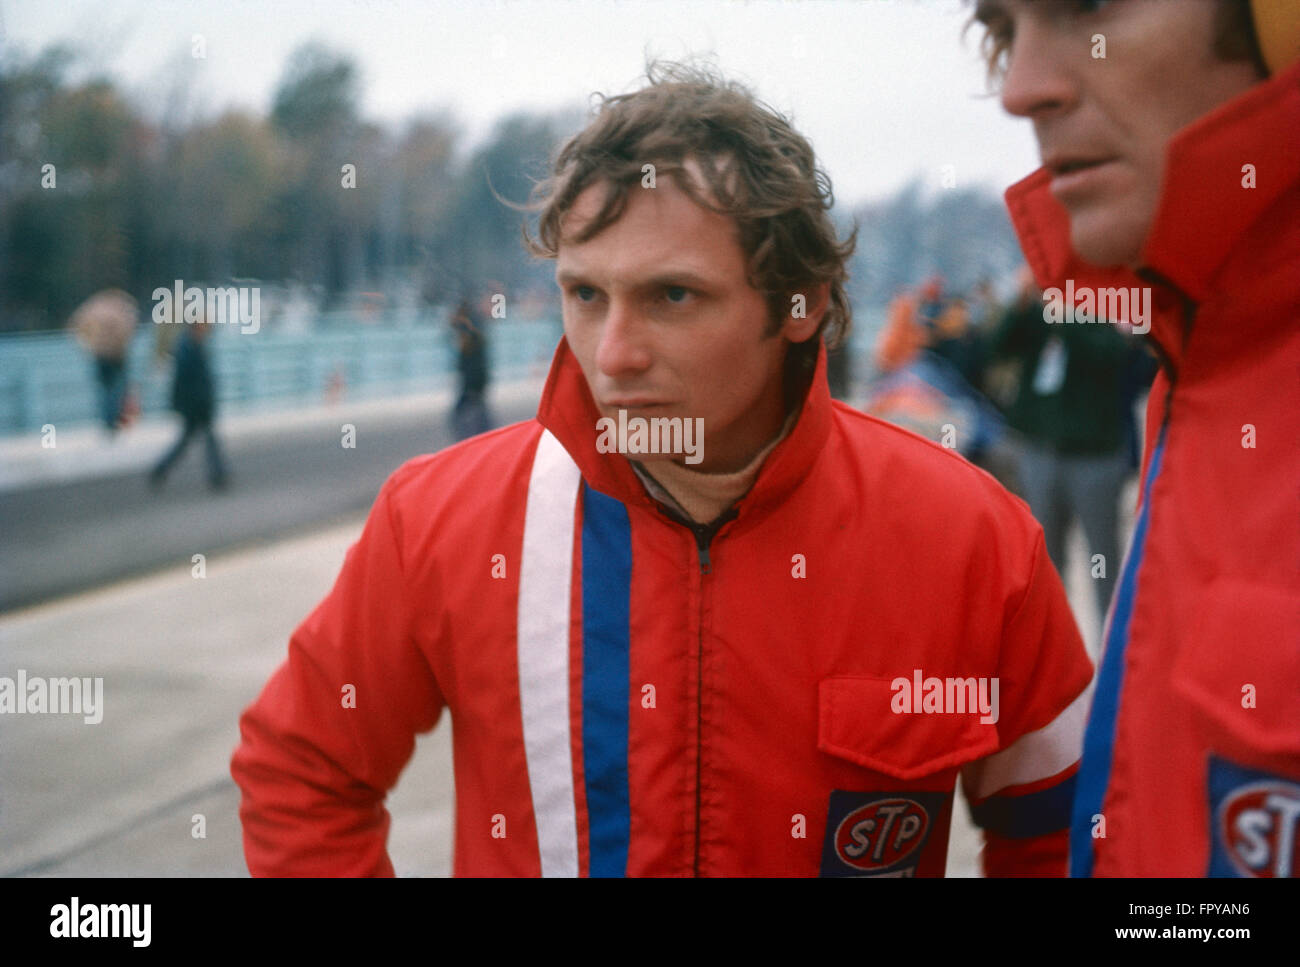 niki lauda 1972 united states grand prix stock photo royalty free image 100175410 alamy. Black Bedroom Furniture Sets. Home Design Ideas